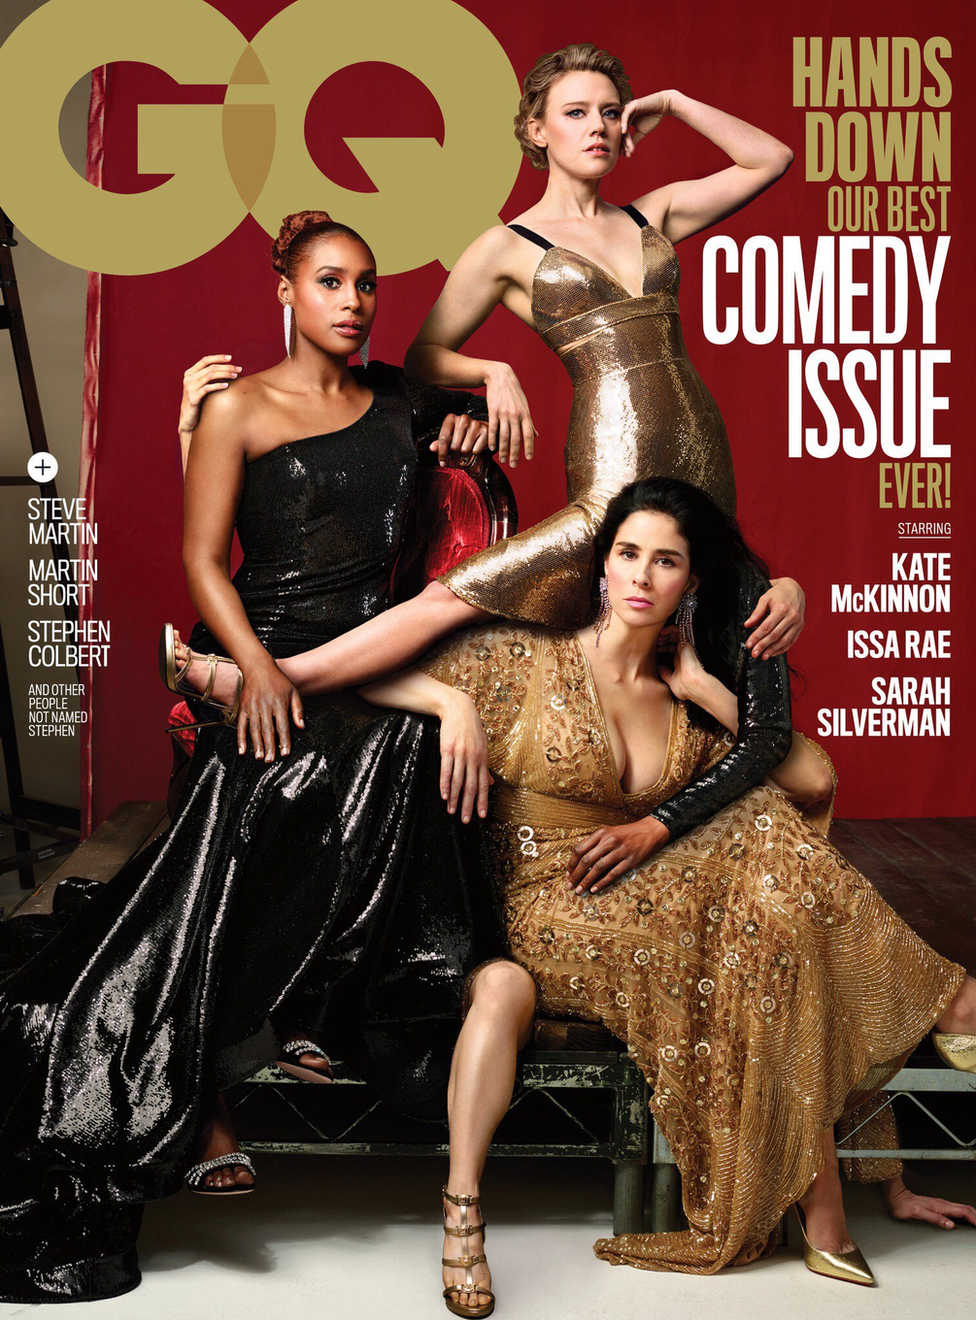 The GQ front cover